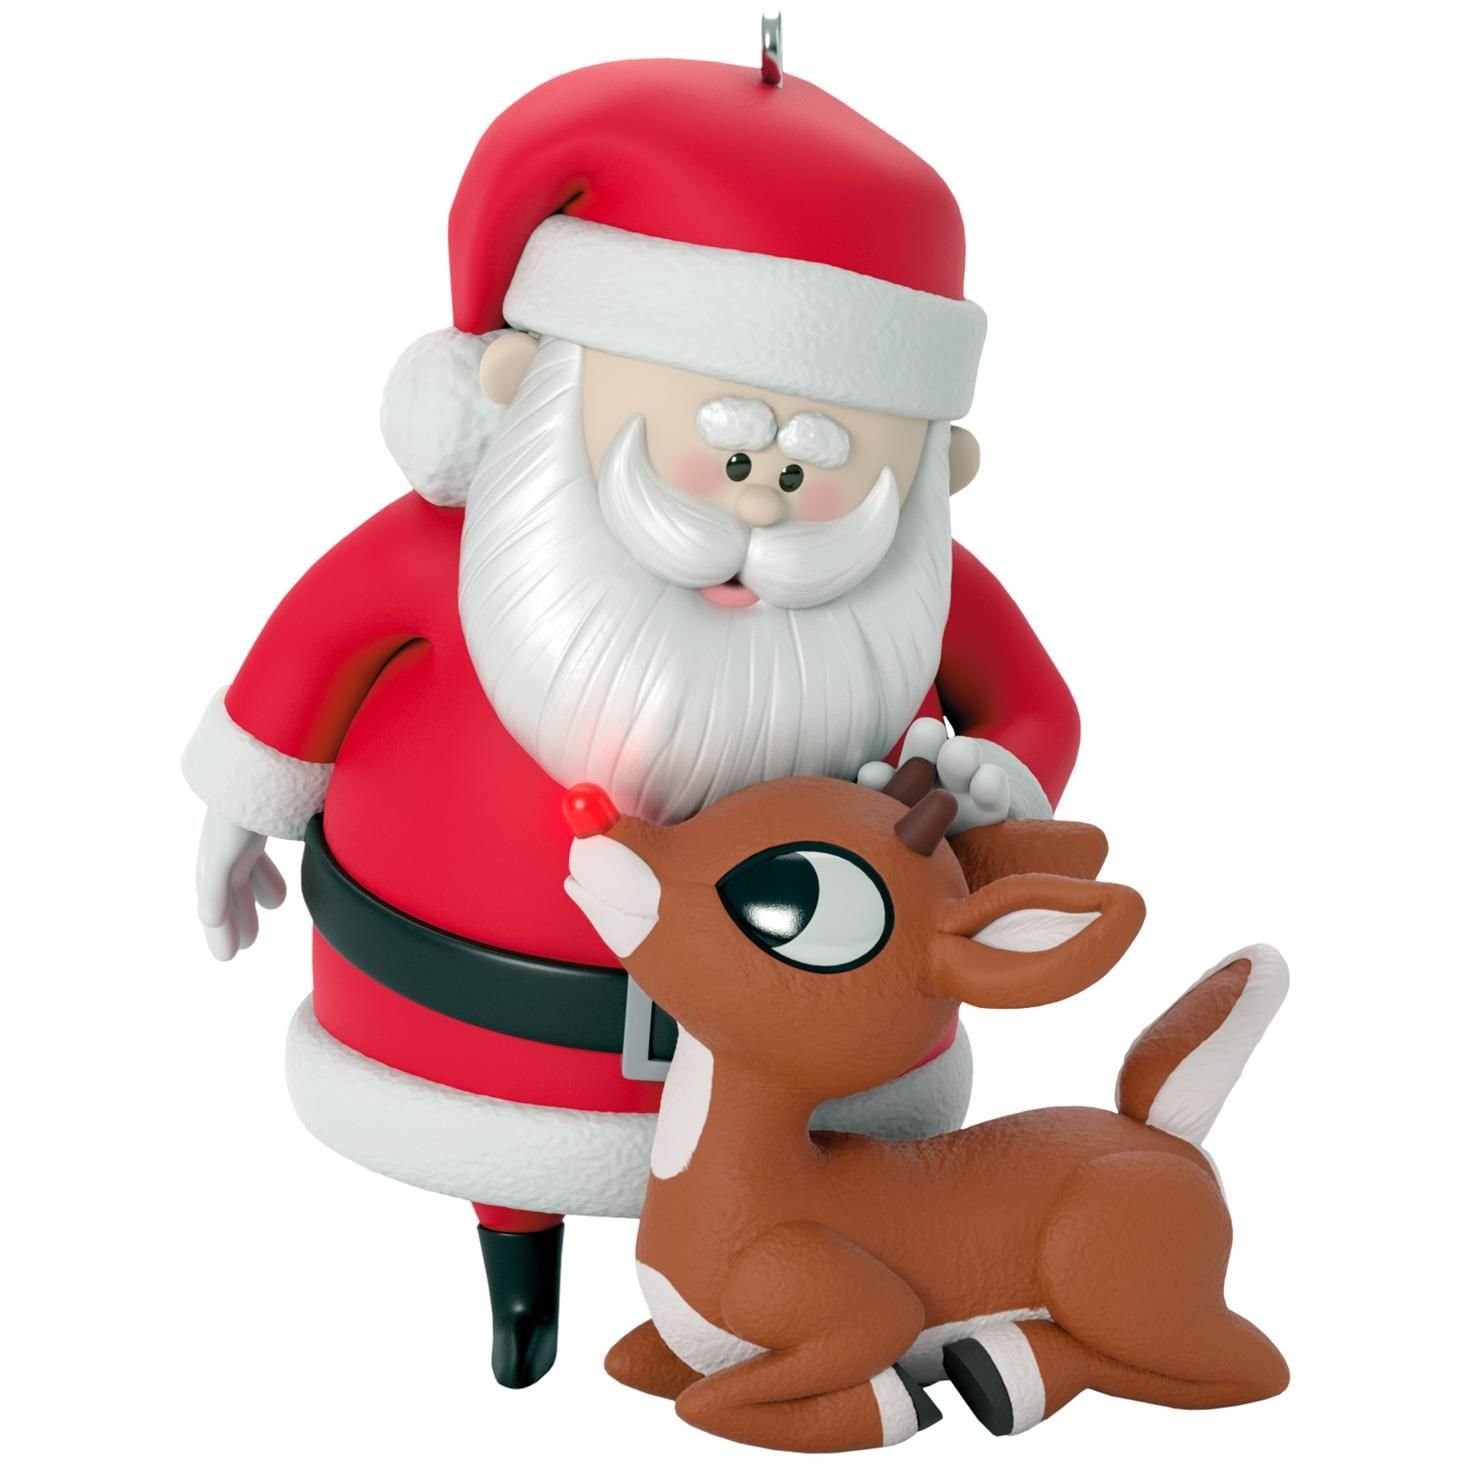 Rudolph the Red-Nosed Reindeer Won't You Guide My Sleigh Tonight? Ornament With Light Movies & TV by Hallmark